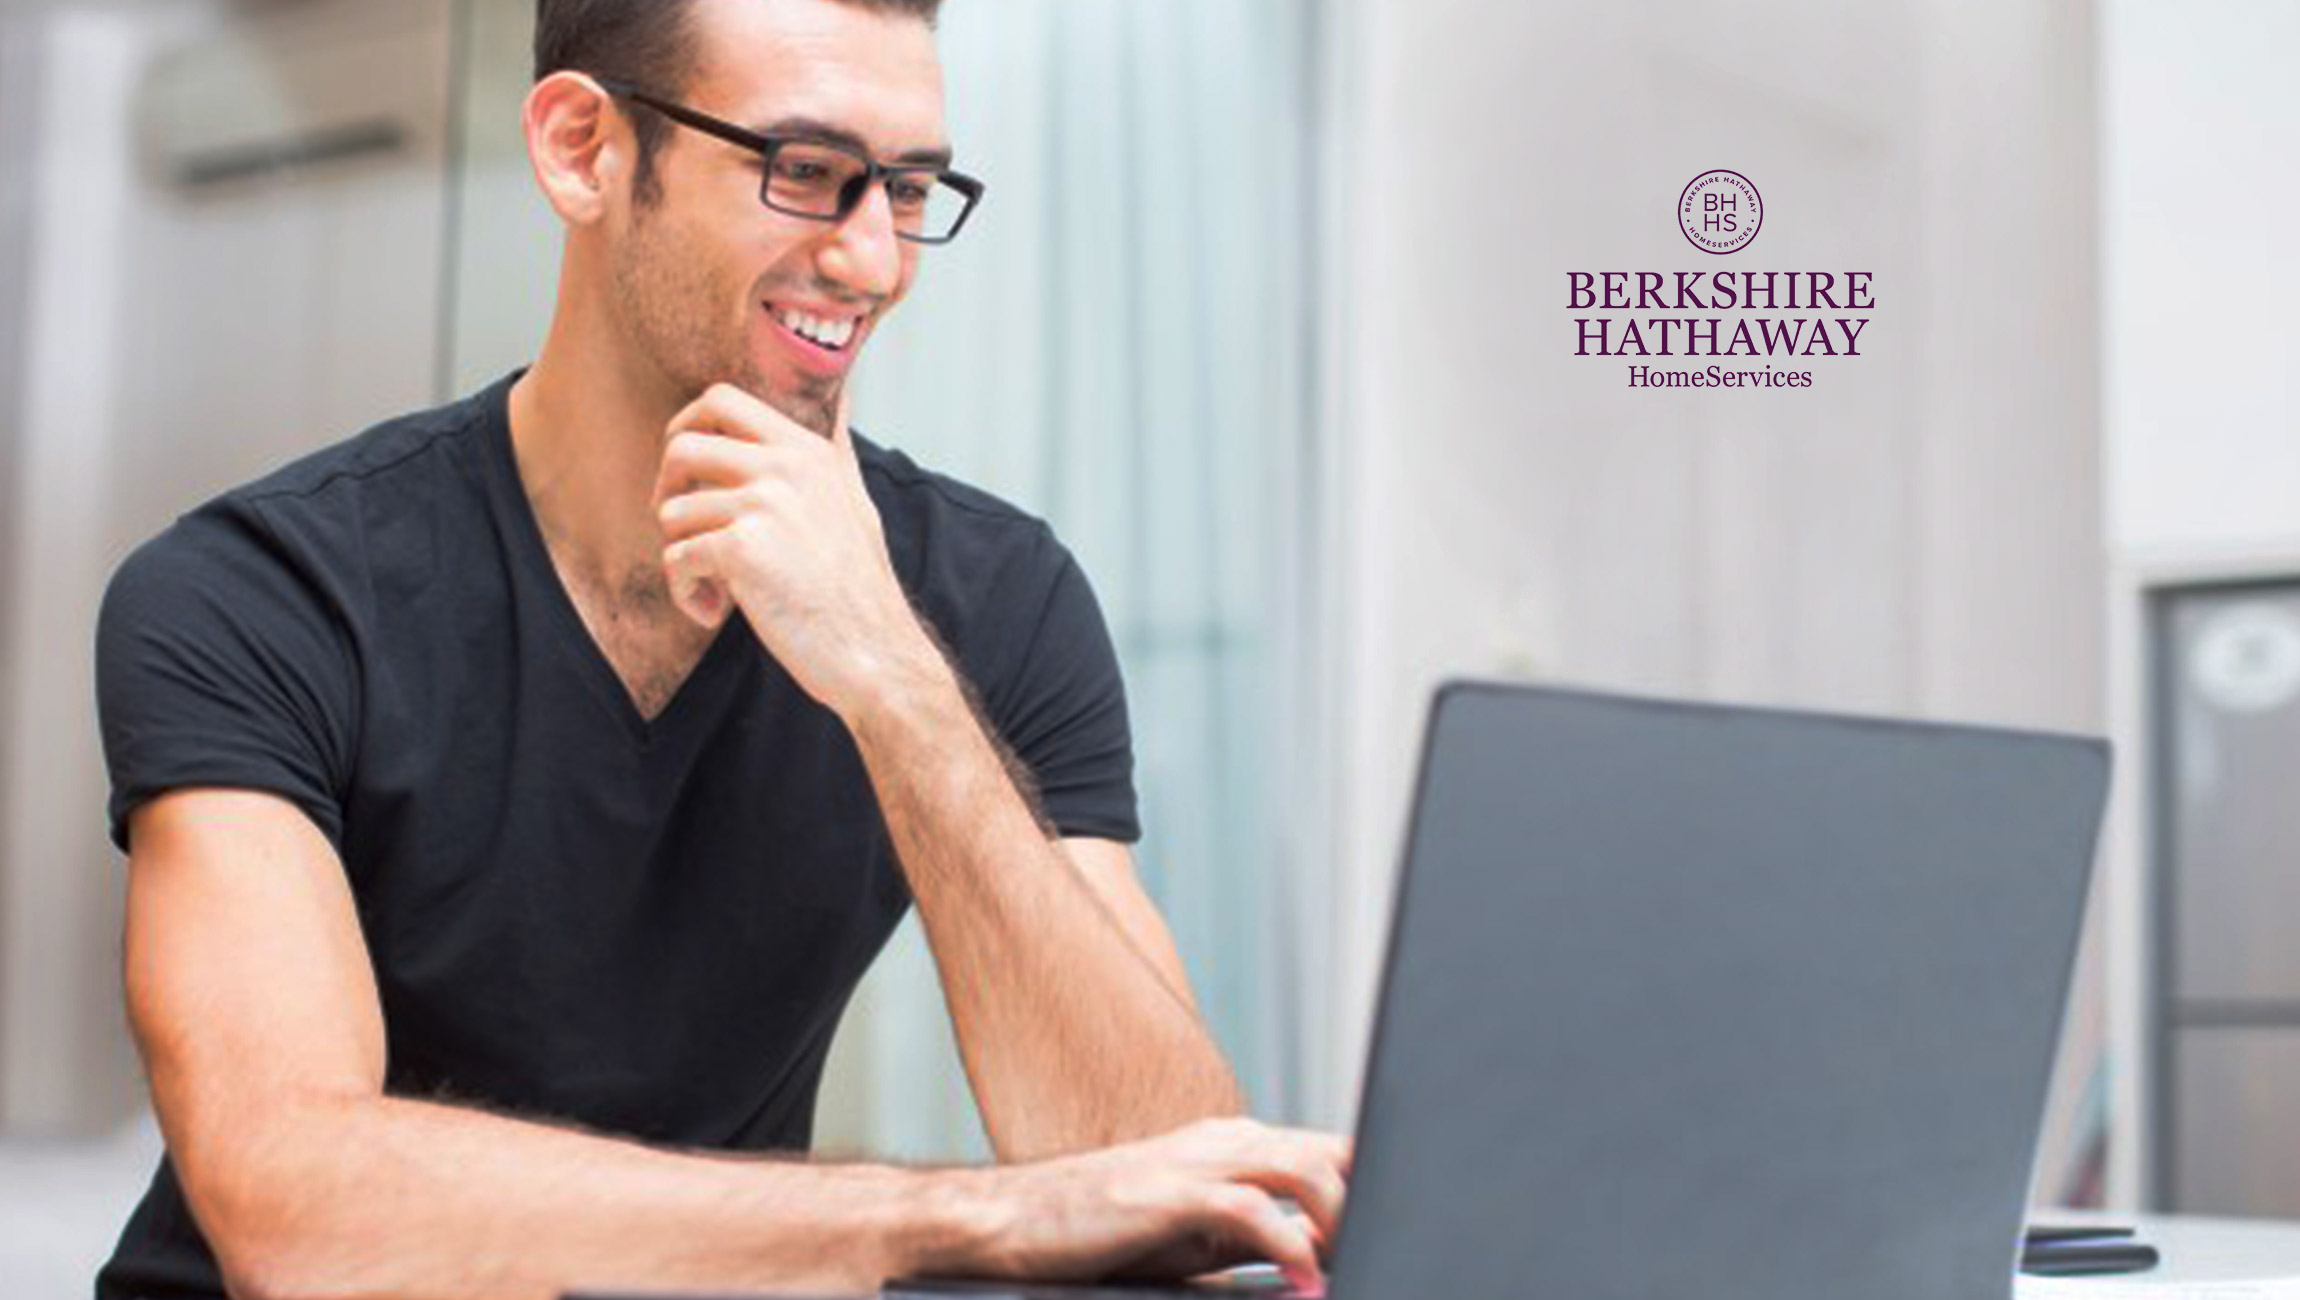 Berkshire Hathaway HomeServices Georgia Properties Announces VISION 2020 Initiative To Increase Agent Productivity